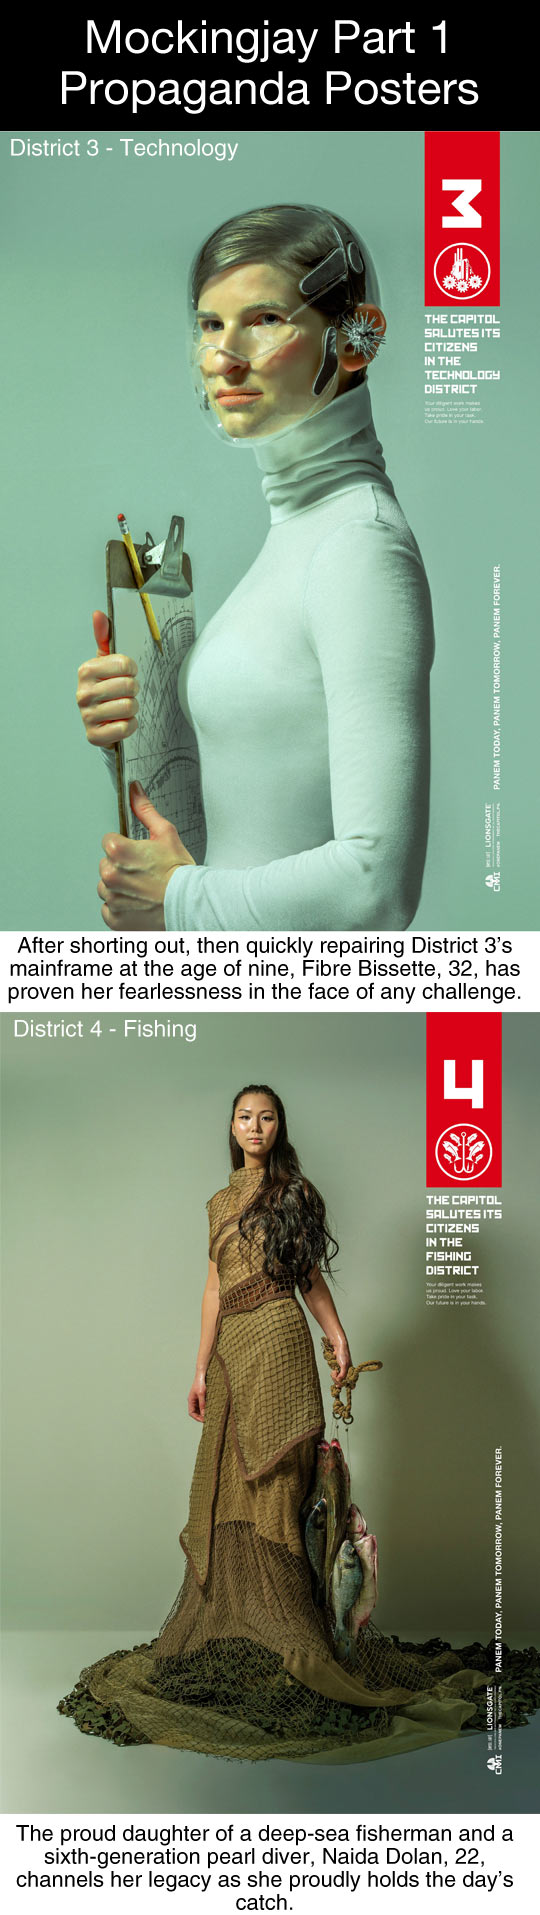 Mockingjay Part 1 Propaganda Posters